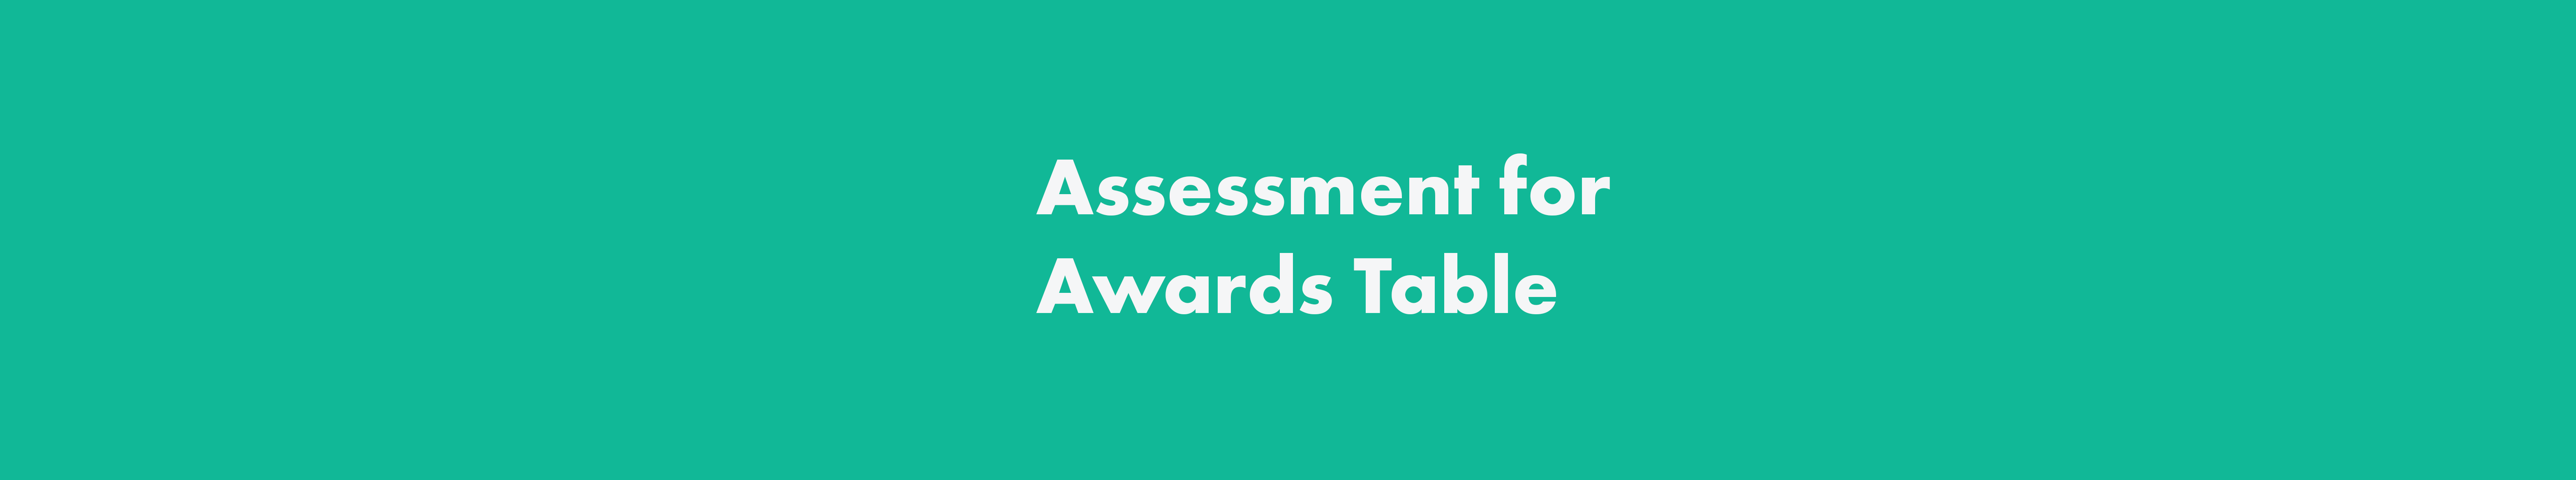 Assessment for awards table